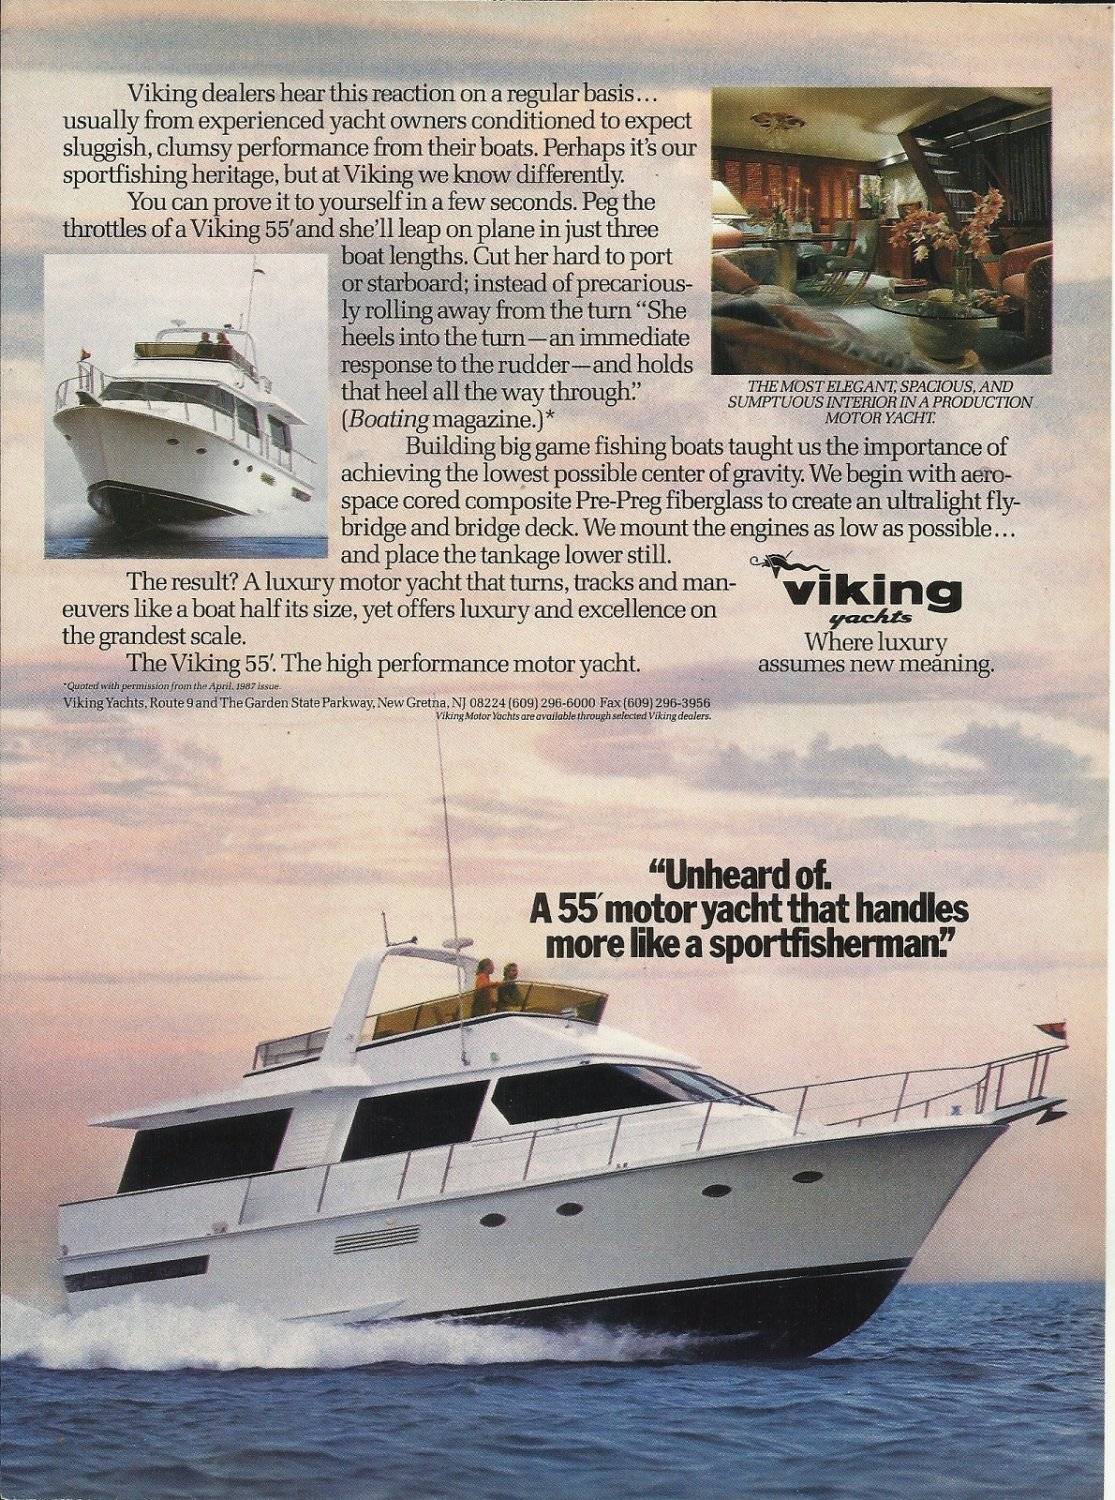 1988 Viking Yachts Color Ad- The 55' Motor Yacht